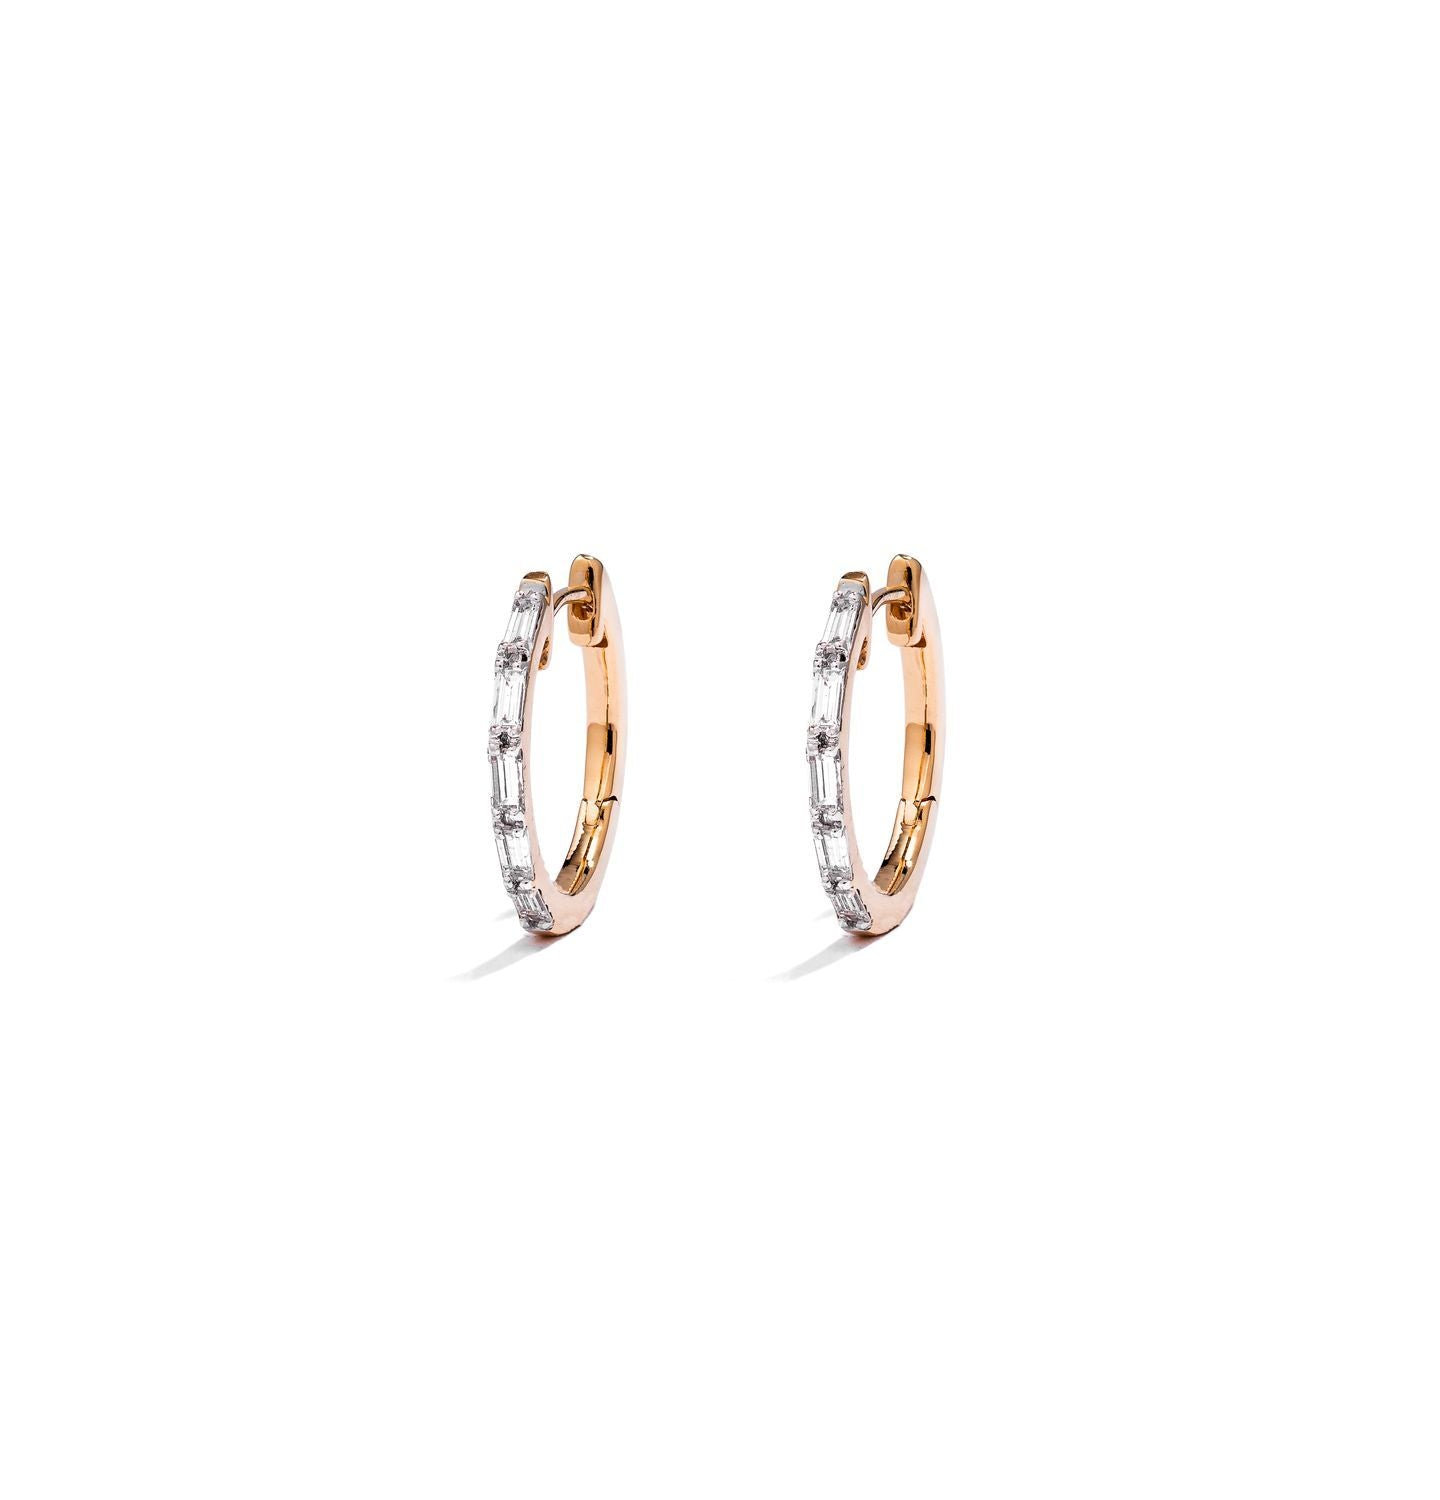 Baguette Diamond 13mm Small Hoop Earrings  (YG WD)